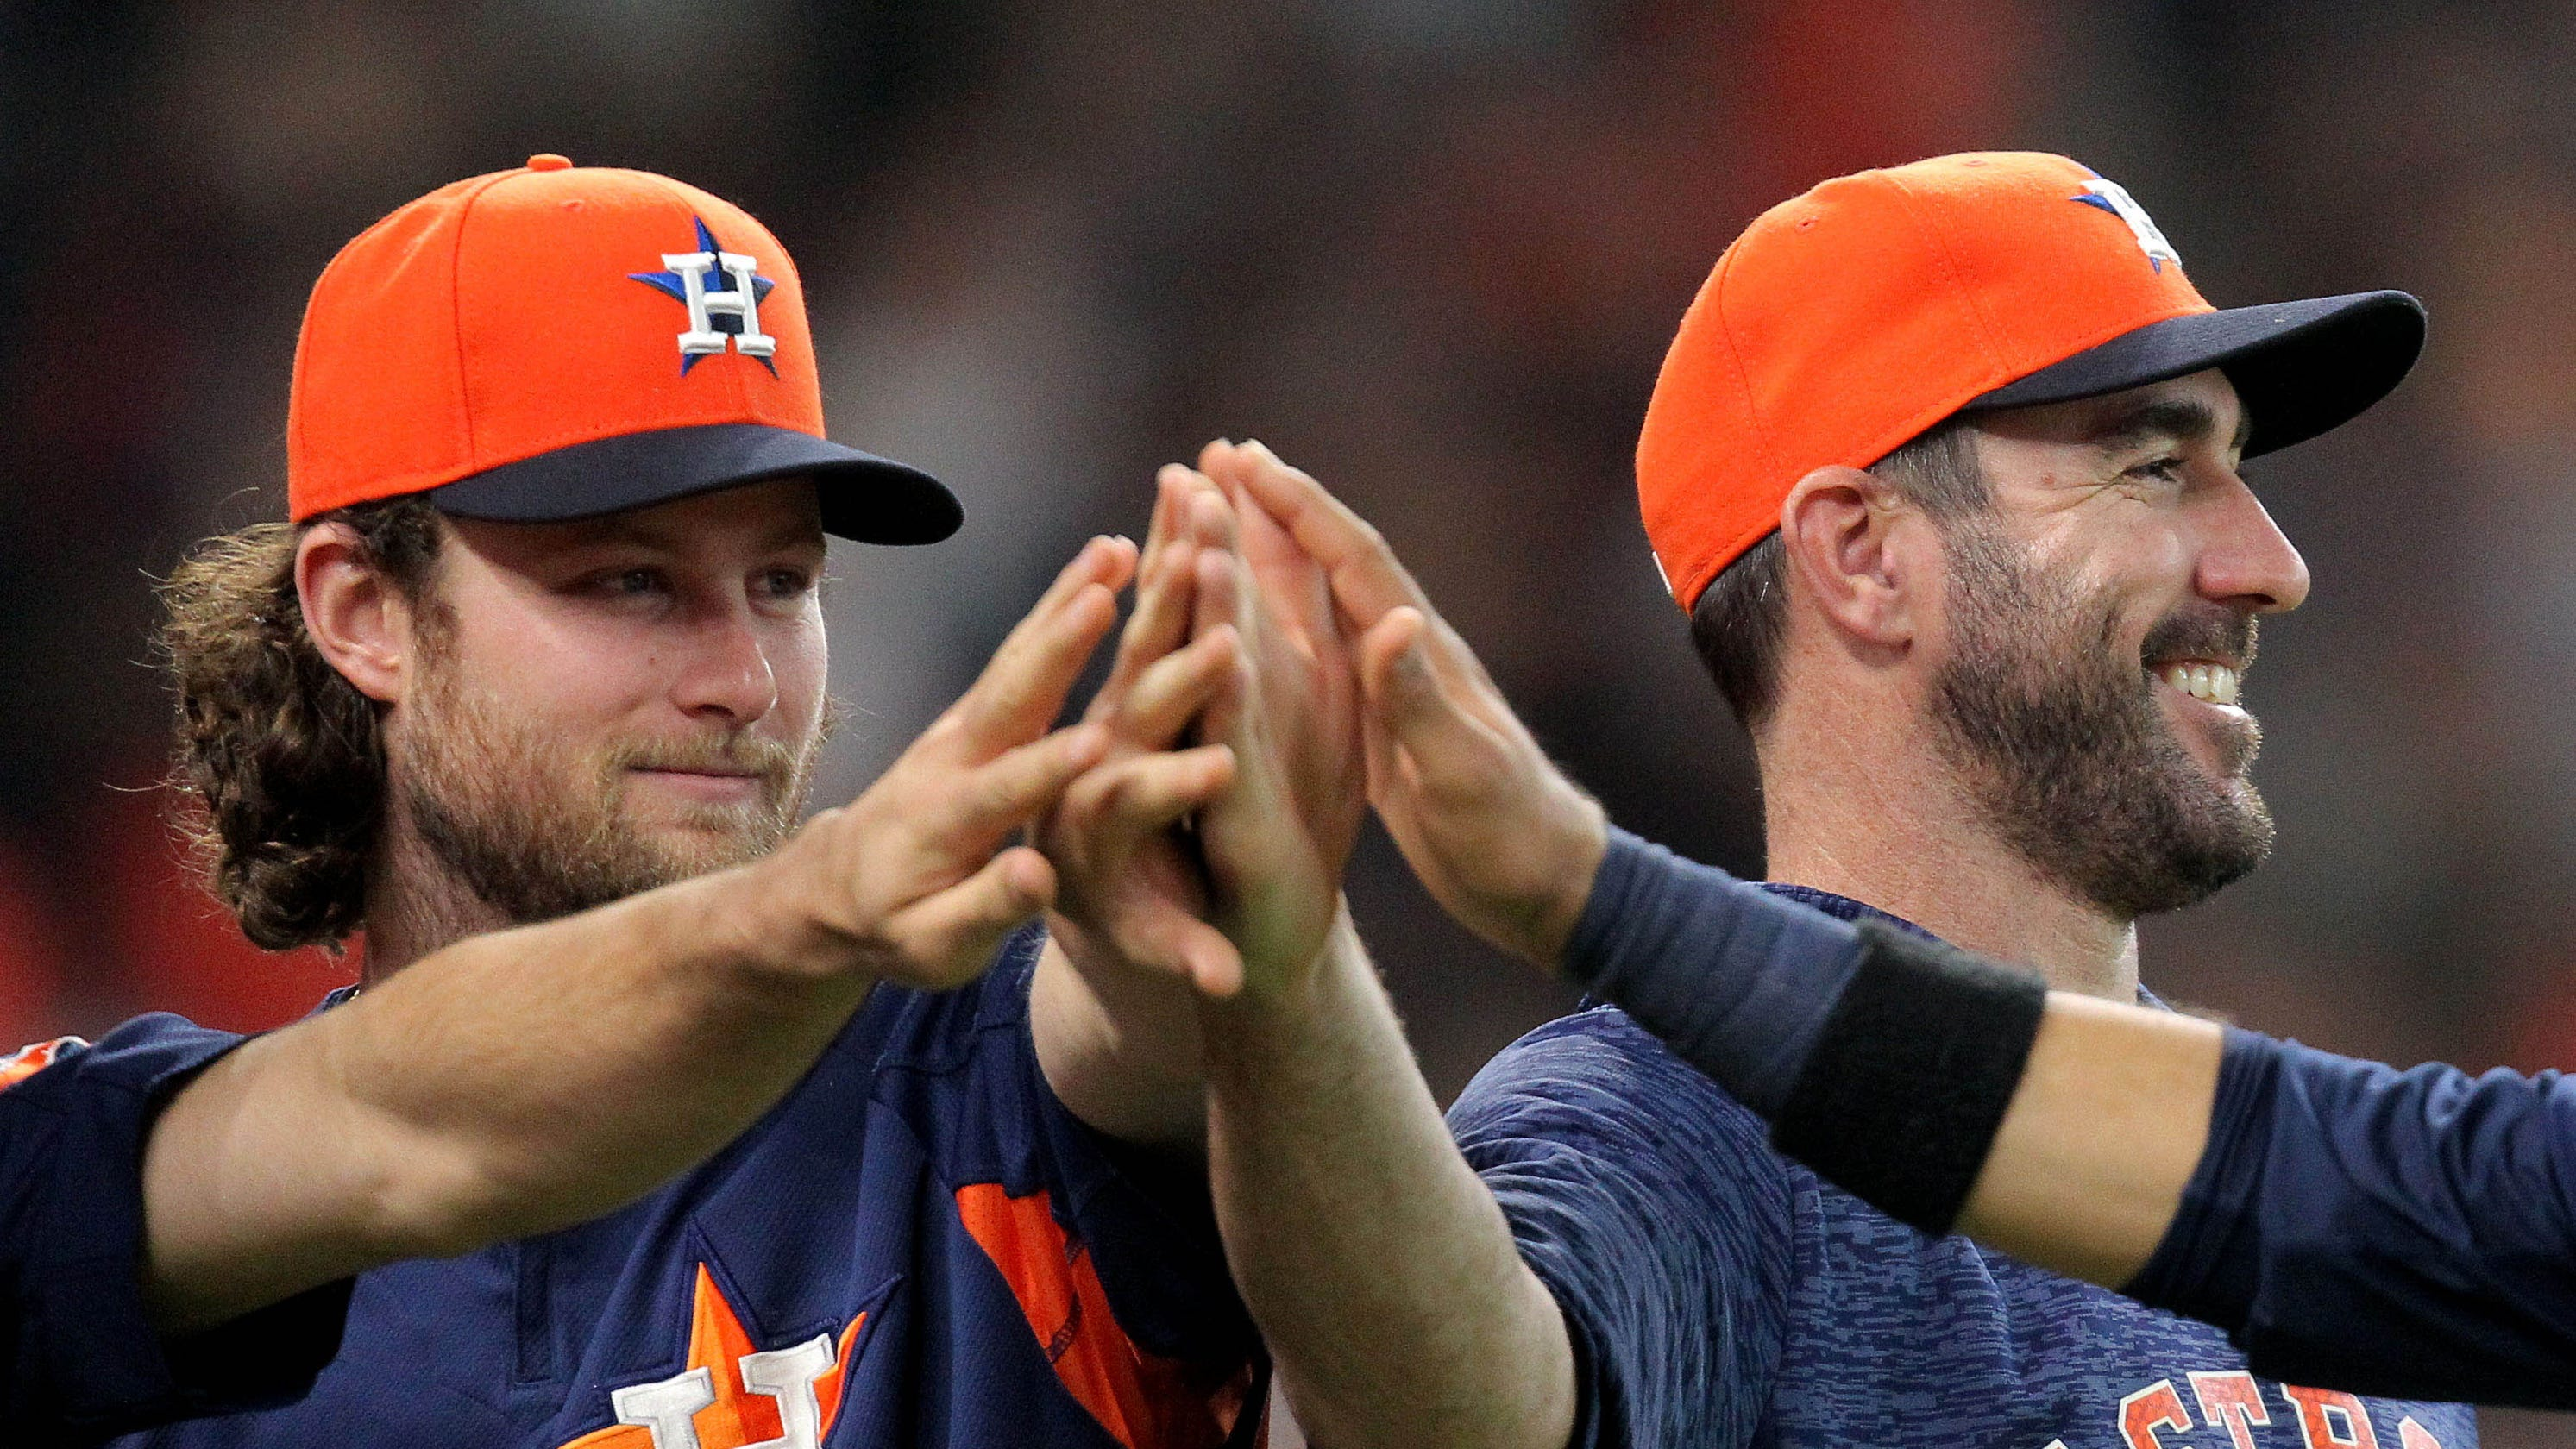 MLB playoffs: Rays face uphill battle versus Astros in ALDS